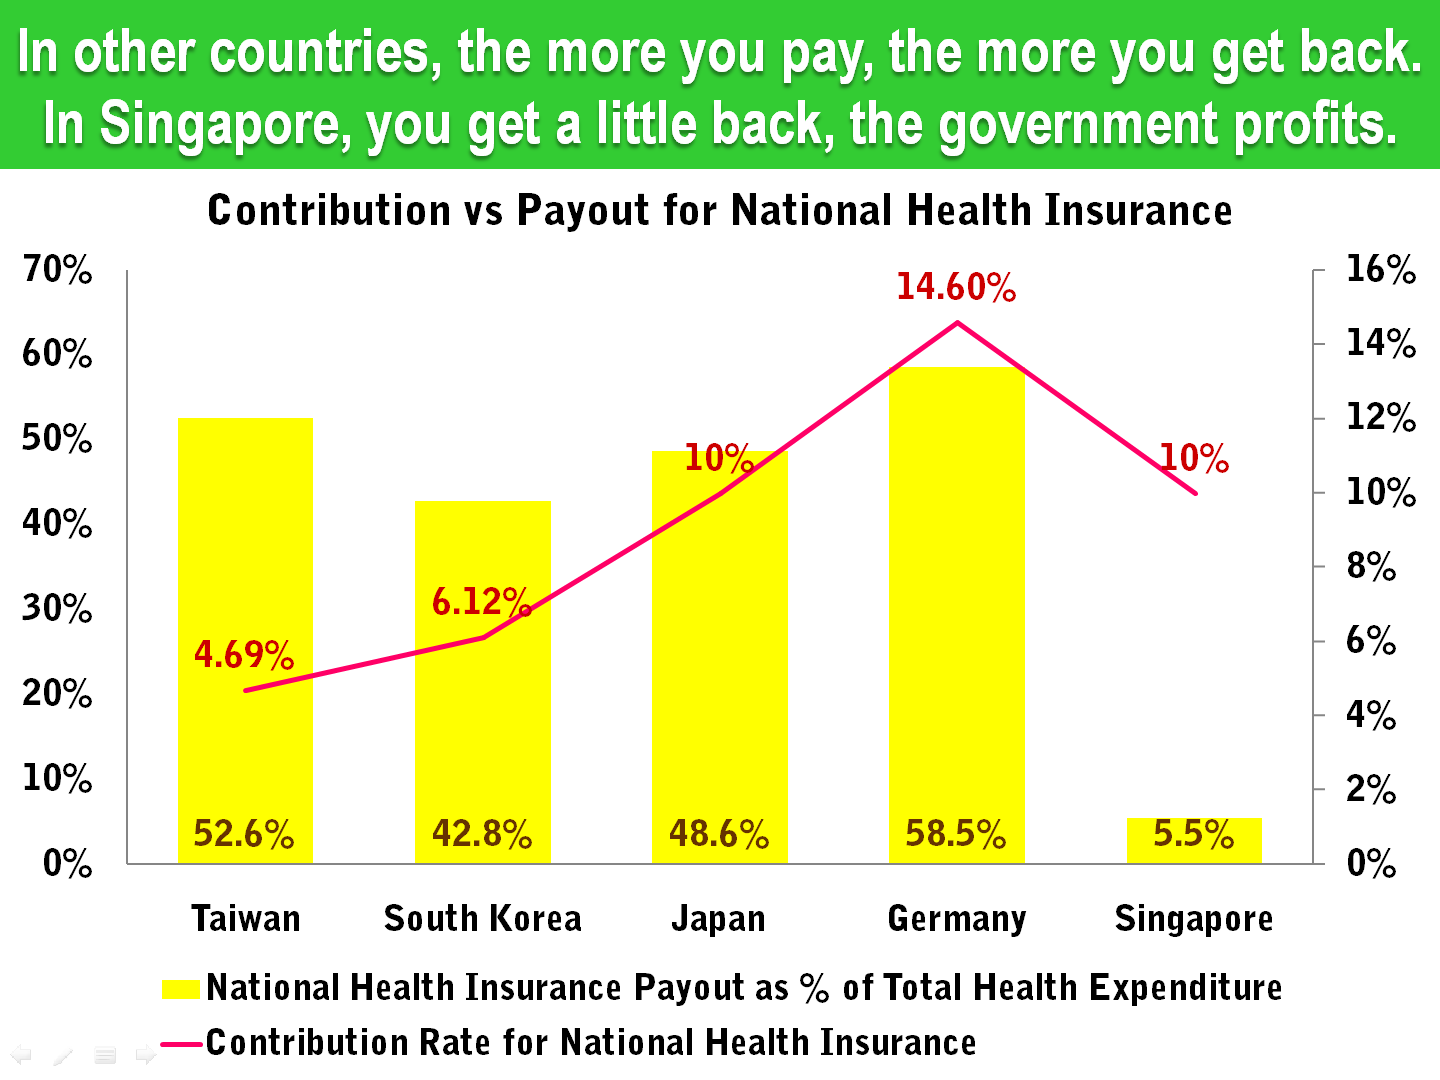 11 Singapore Health Insurance Contribution Rate vs Total Expenditure.png